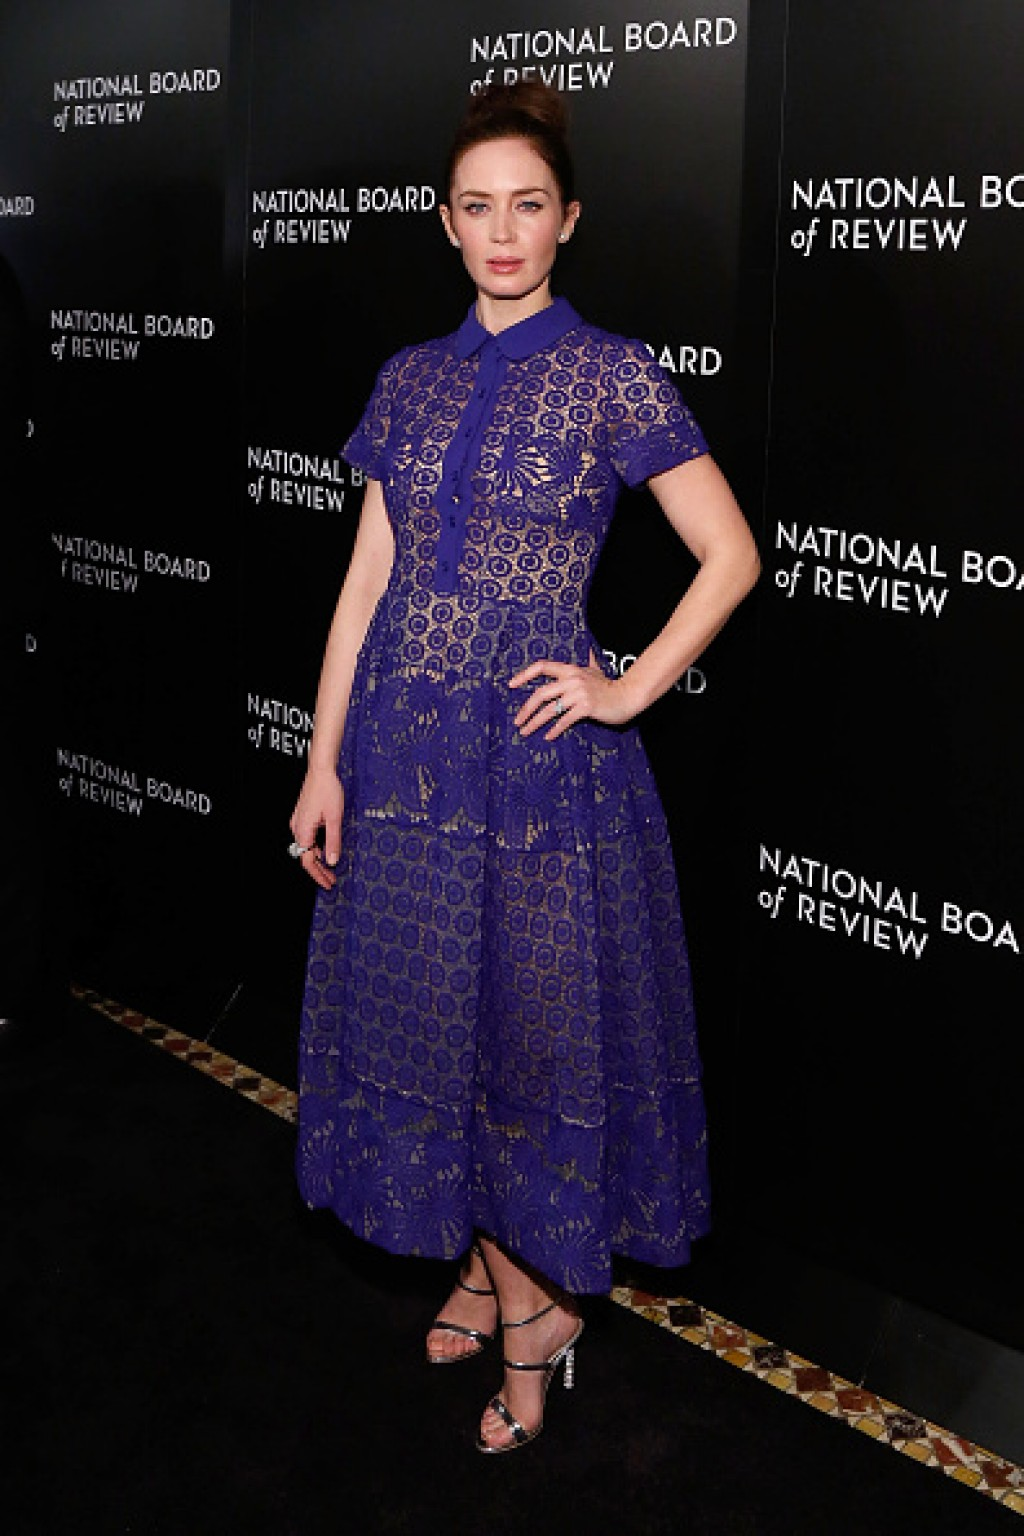 Emily-Blunt-016-National-Board-of-Review-Gala-Lace-Dress-1024x1536